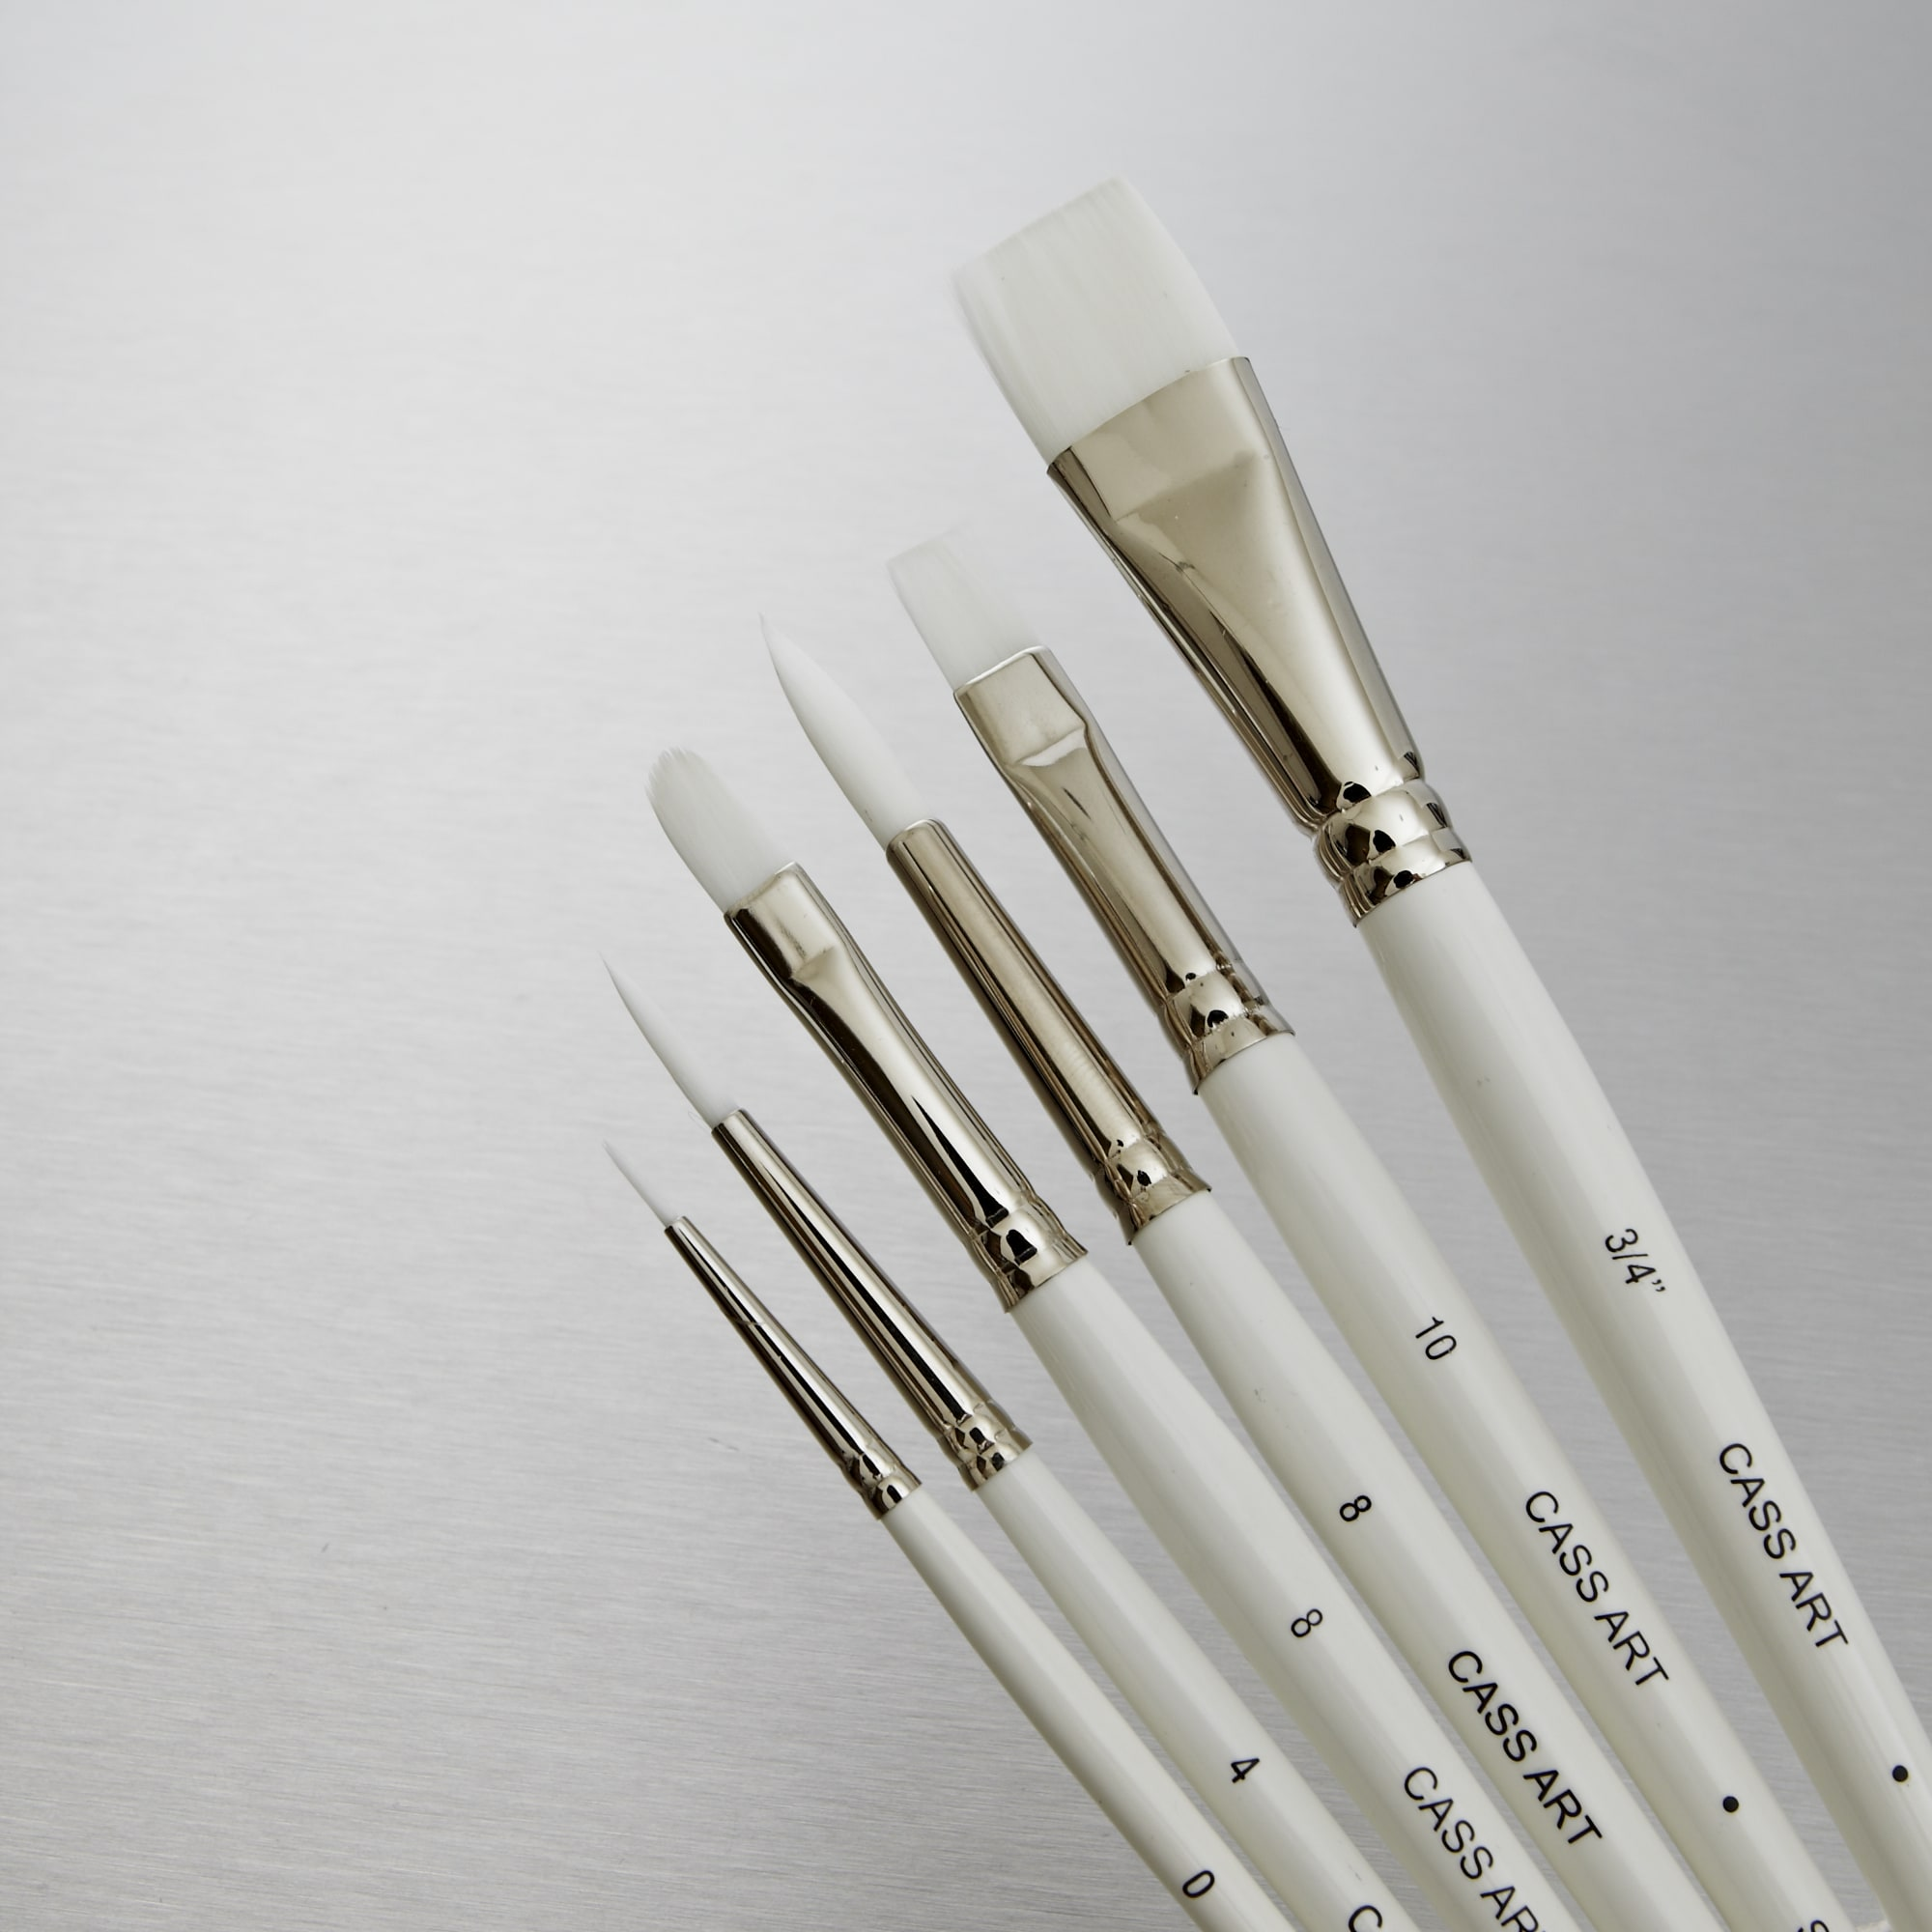 Cass art white synthetic brushes set of 6 professional for Best paint brush brands